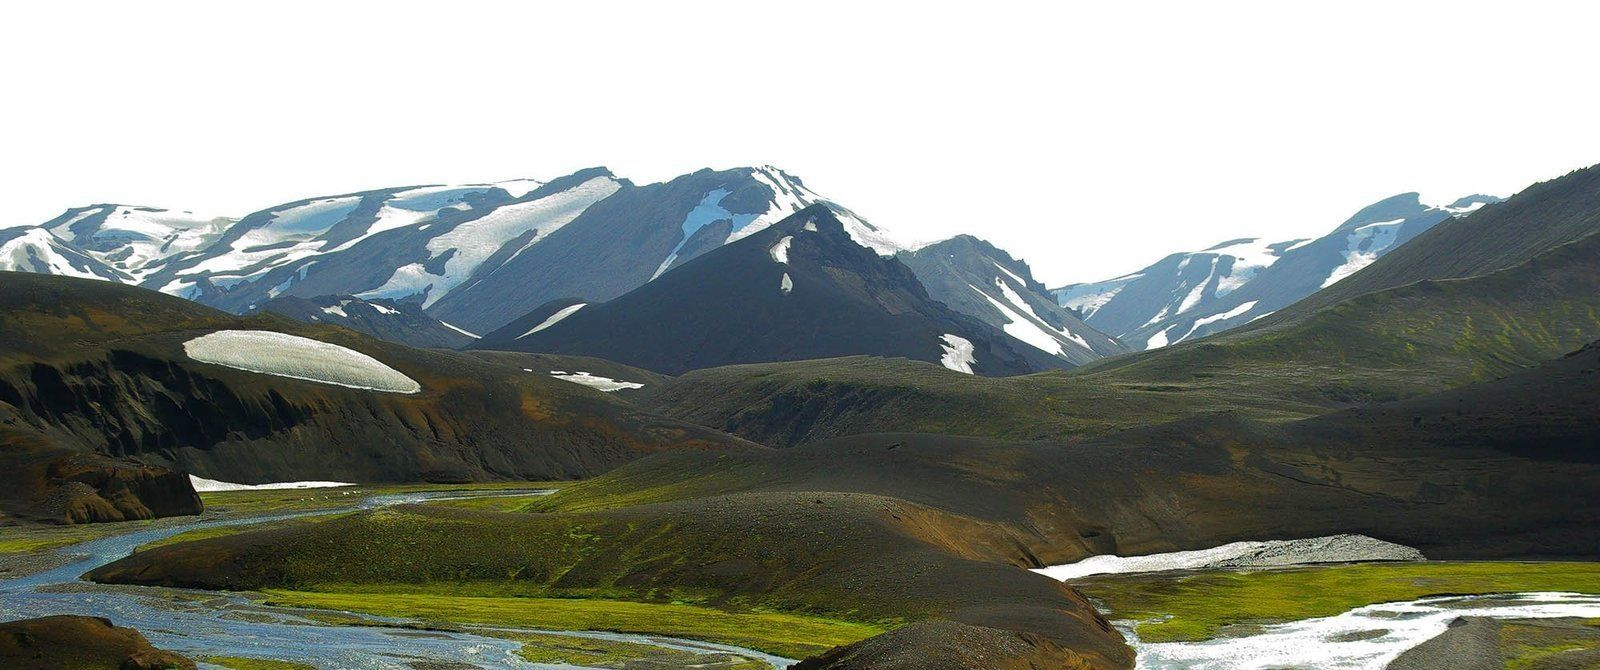 Trekking and trails in Landmannalaugar rainbow mountains, Iceland